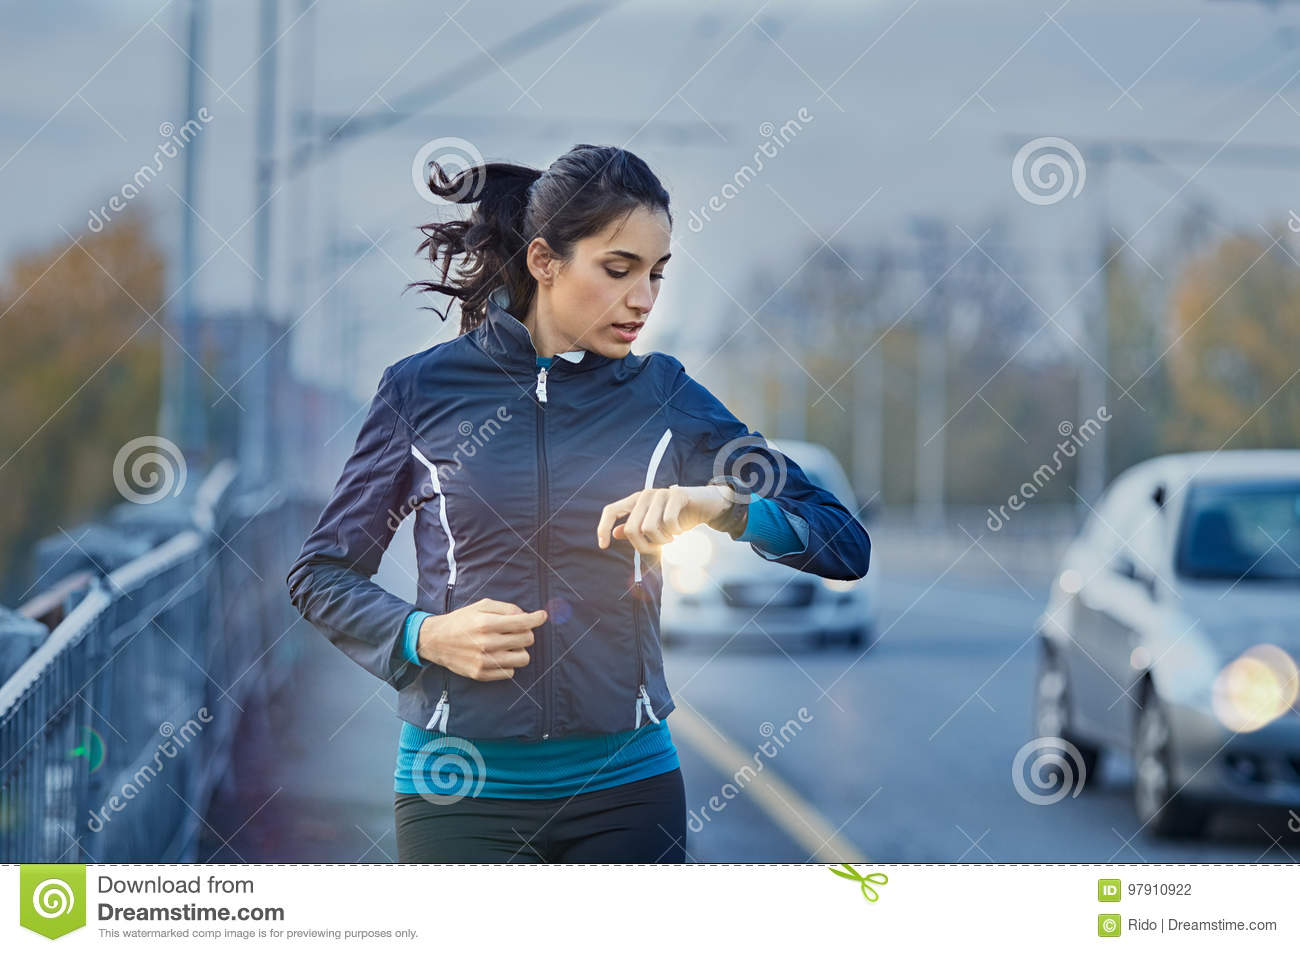 Jogging Run Time Runner Checking Time Stock Photo Image Of Athlete Training